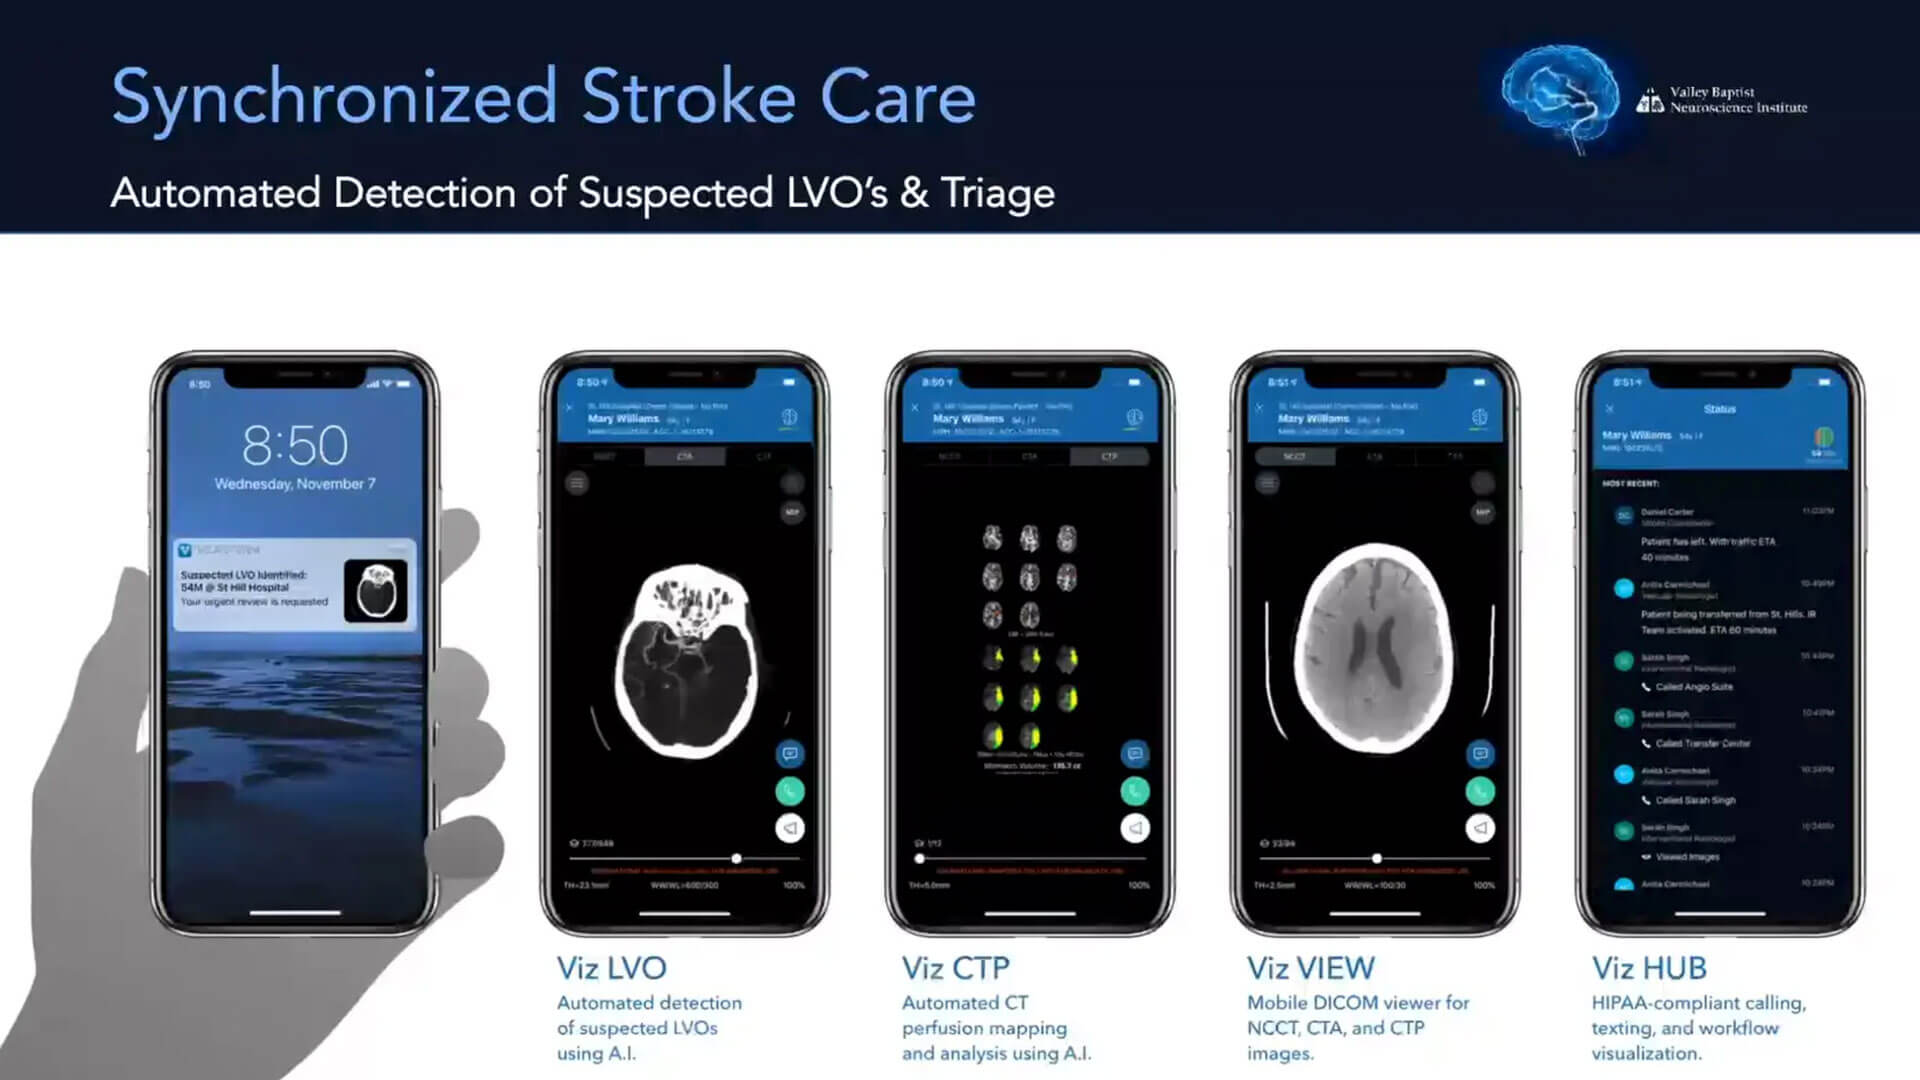 How Viz.ai accelerates Acute Ischemic Treatment and assists with care during COVID-19